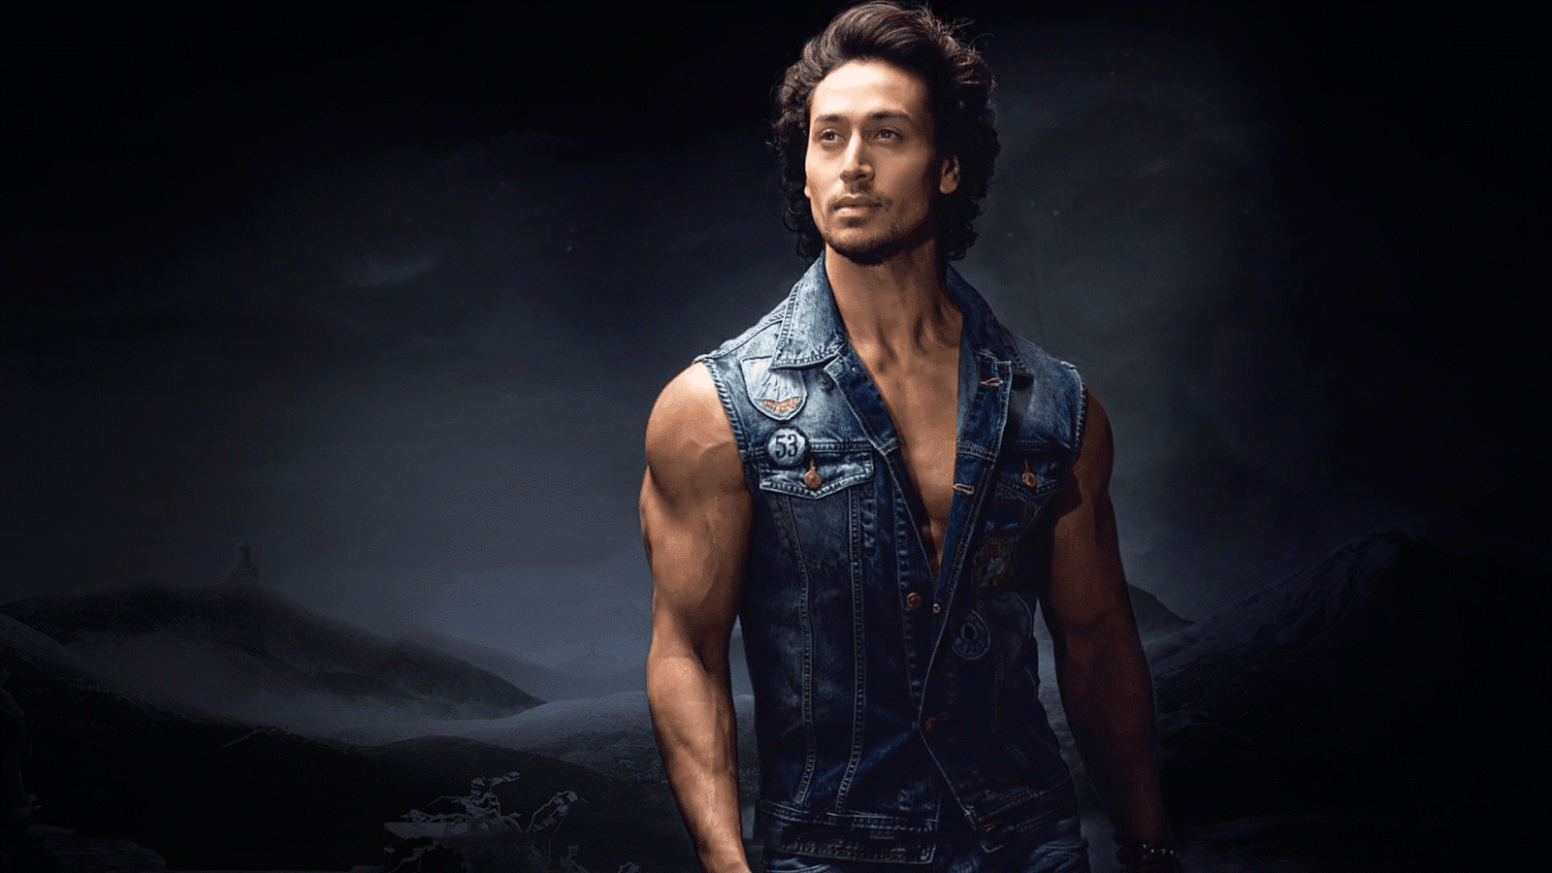 Tiger Shroff Wallpapers HD Download Free 1080p ...